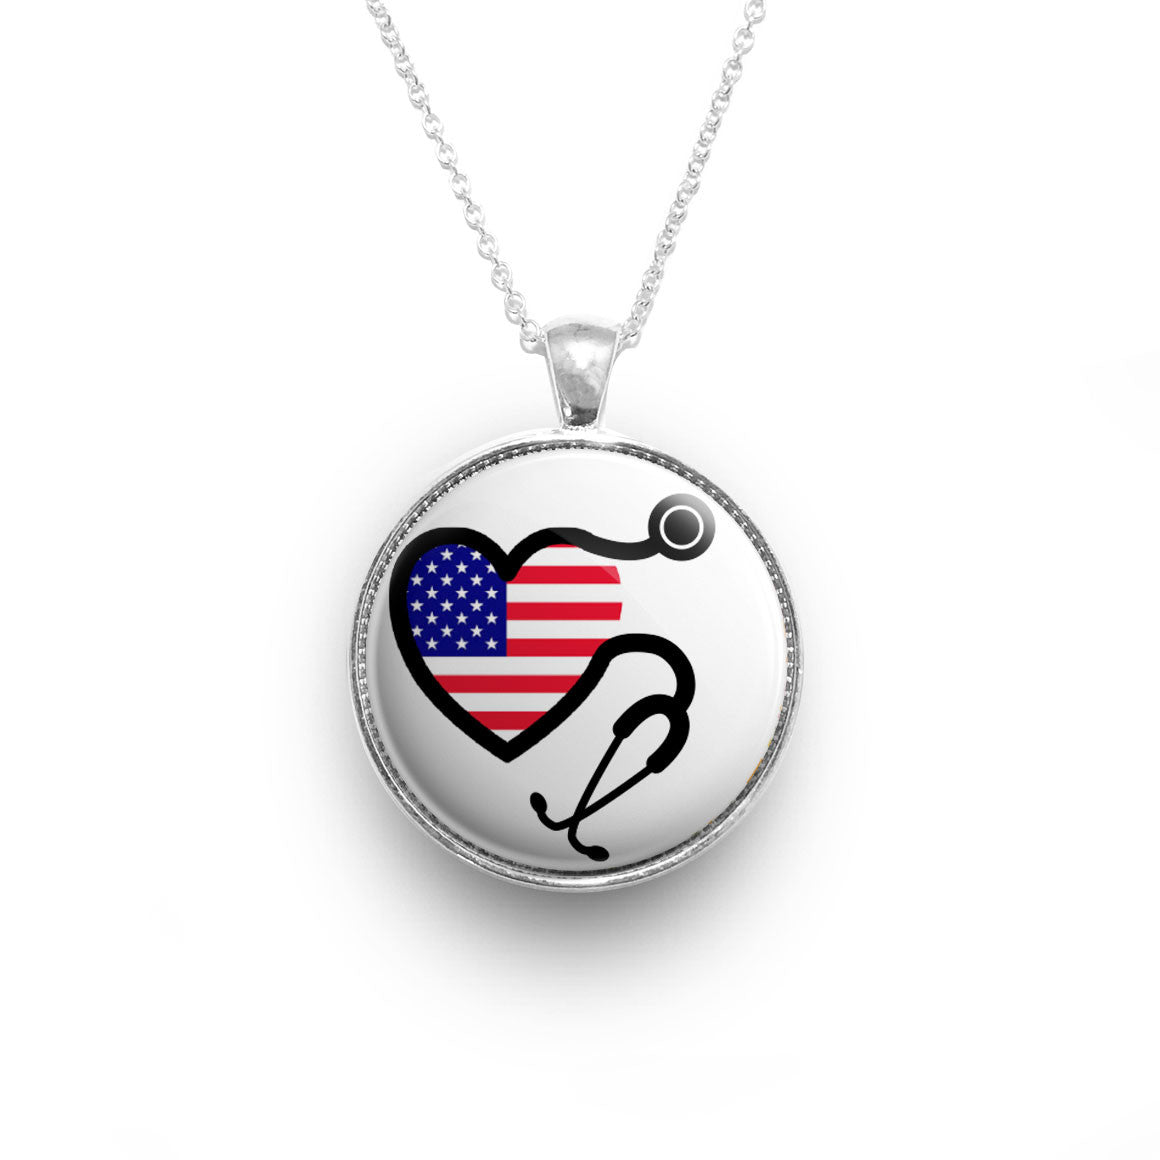 stars pendant in independence item necklaces patriotic my from dog american usa of stripes jewelry tone necklace silver crystal patriot day tag shaped flag and men dante gift freedom star july shape